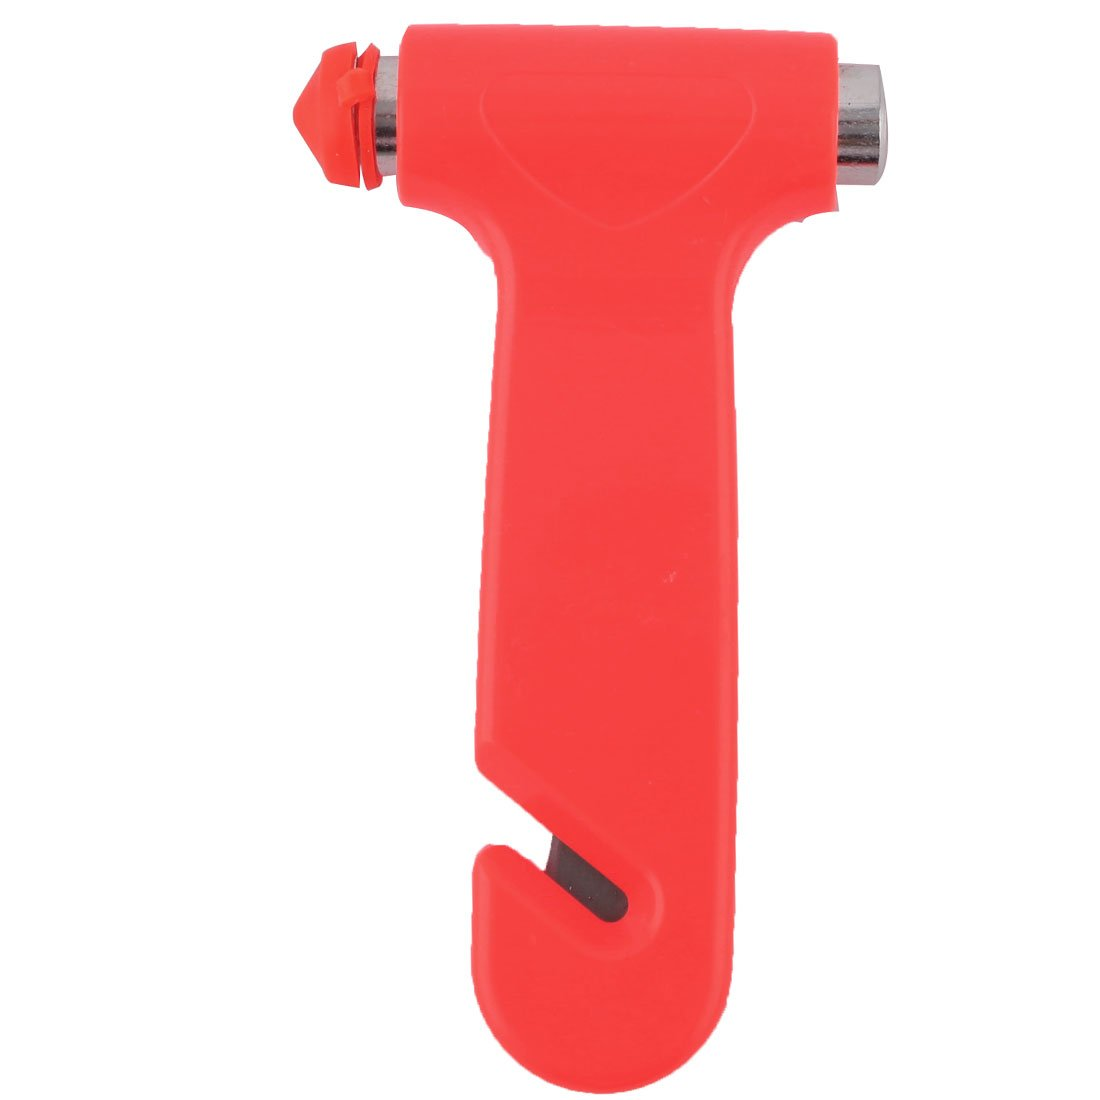 uxcell Plastic Handle Car Auto Safety Emergency Break Hammer 133mm Long 2pcs by uxcell (Image #3)